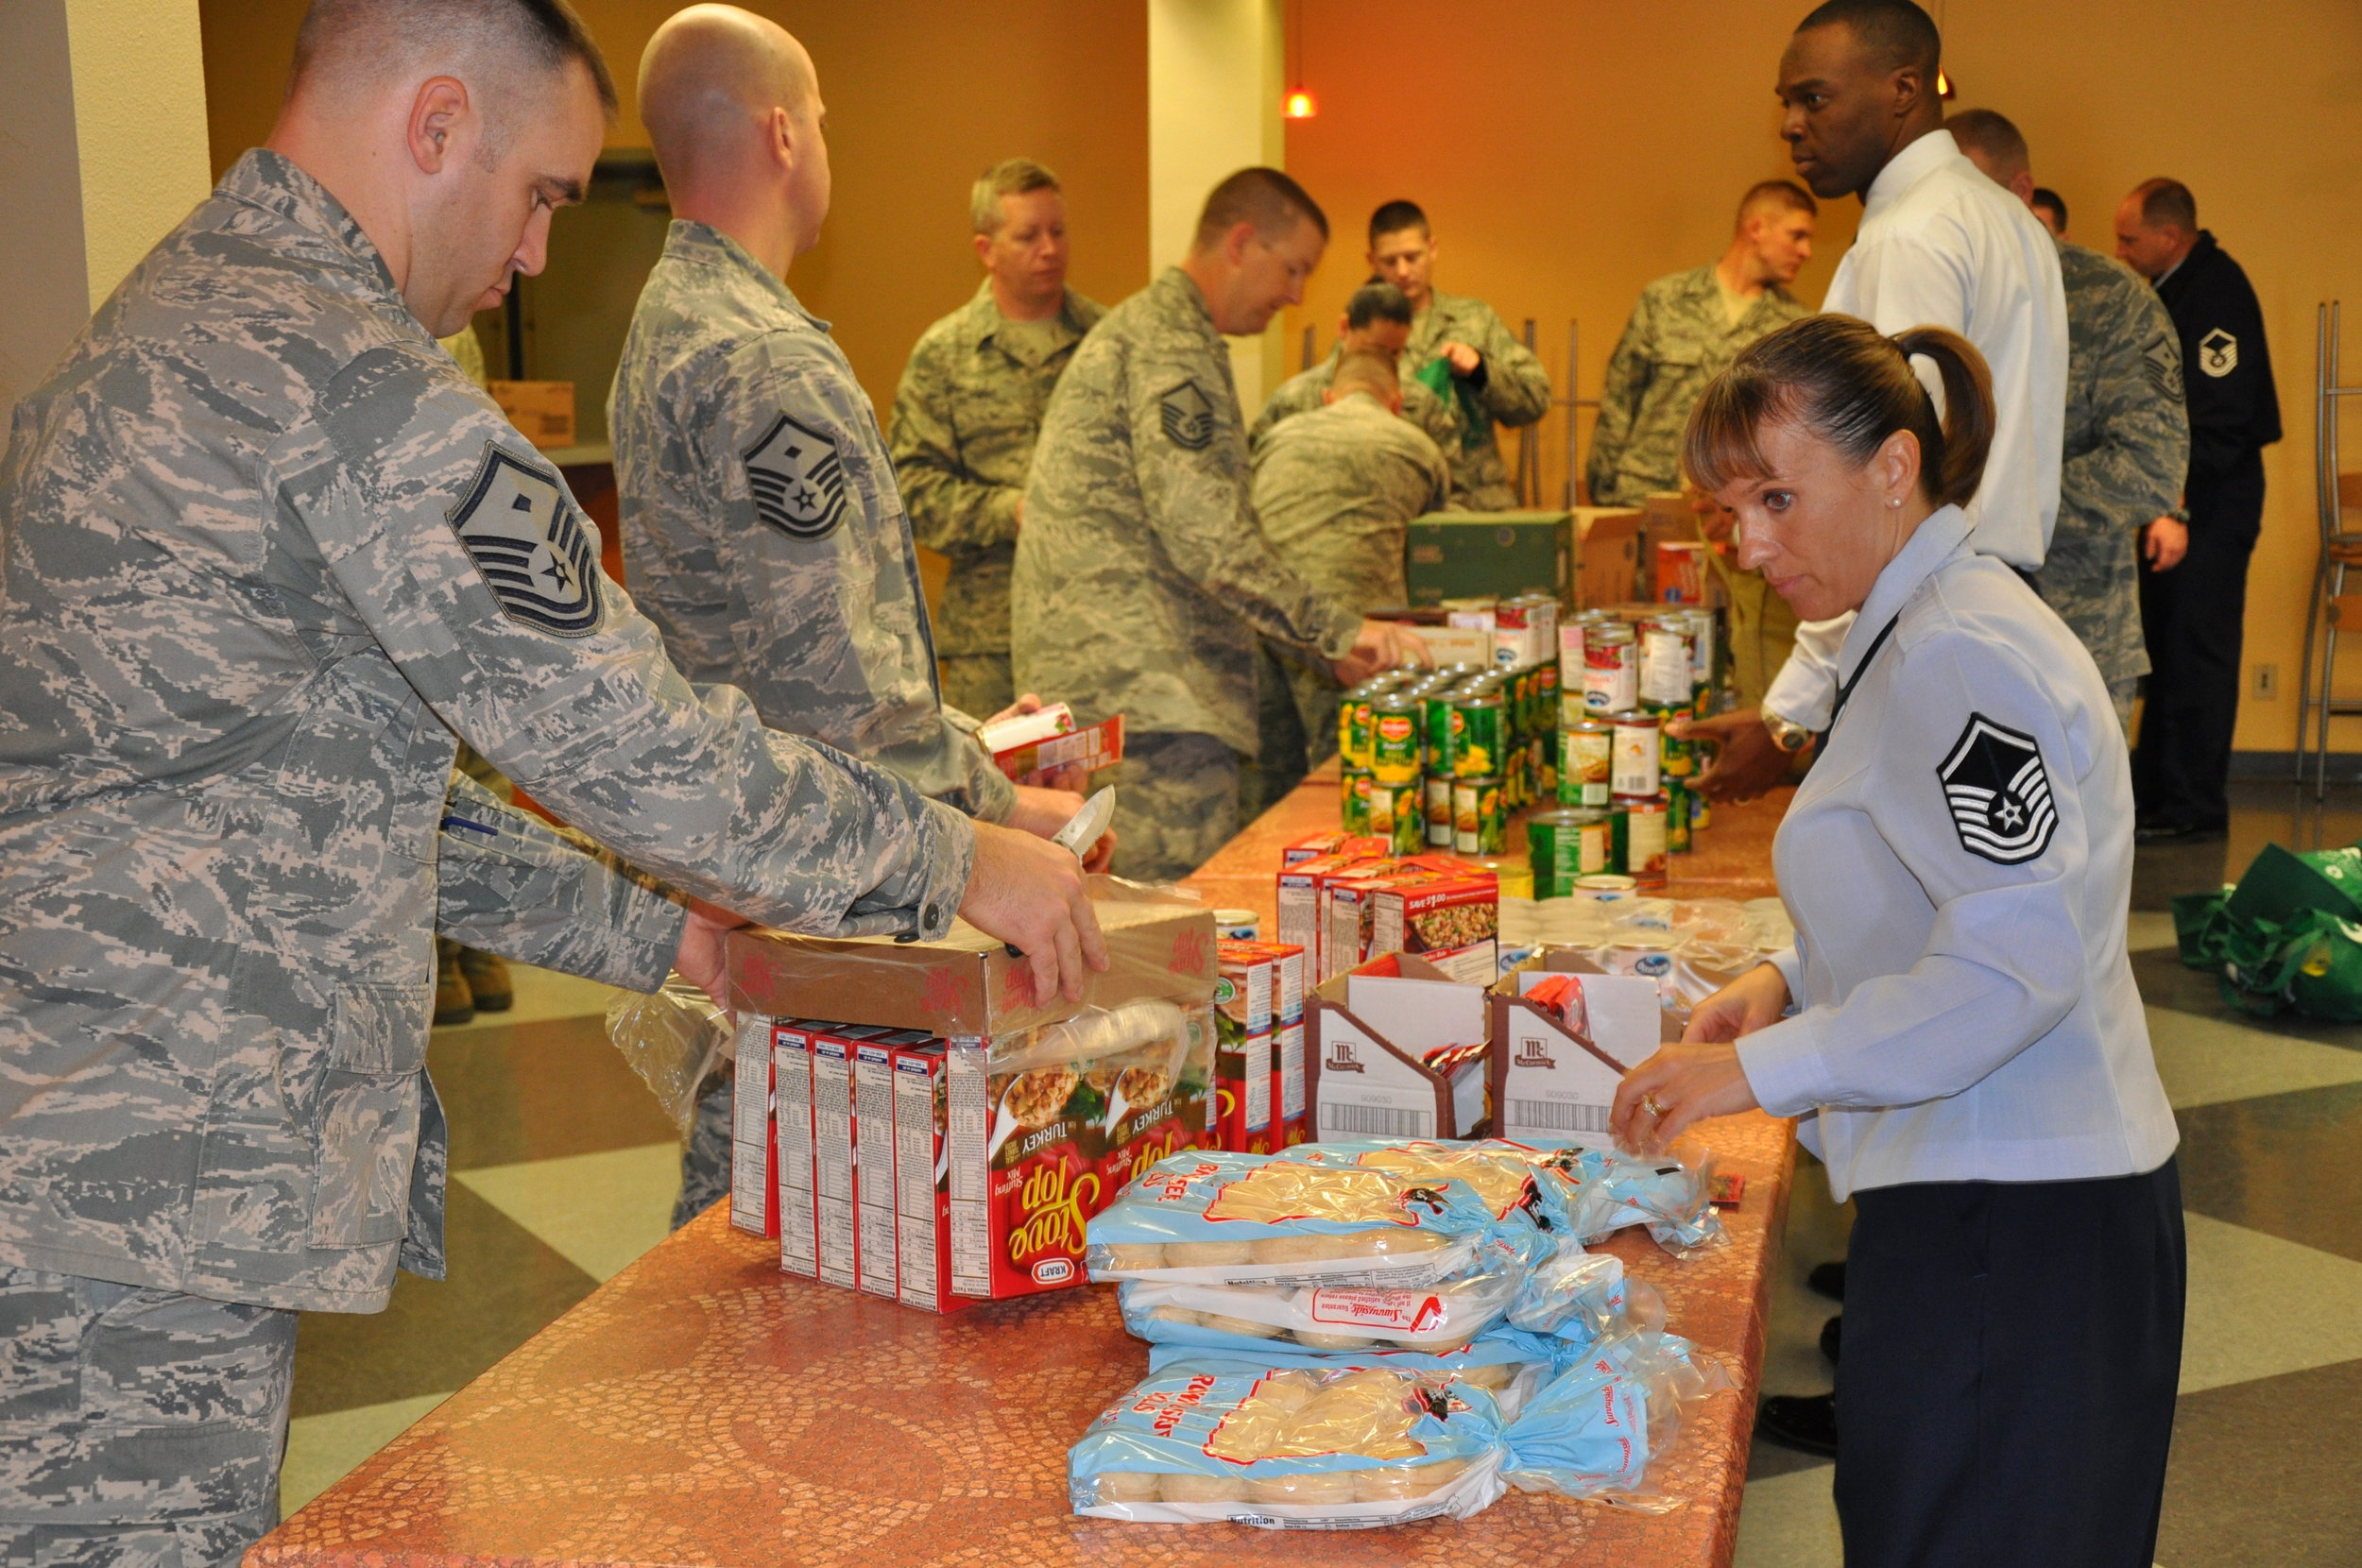 - The men and women of Operation Beale Warm Heart preparing Thanksgiving baskets for deserving families.